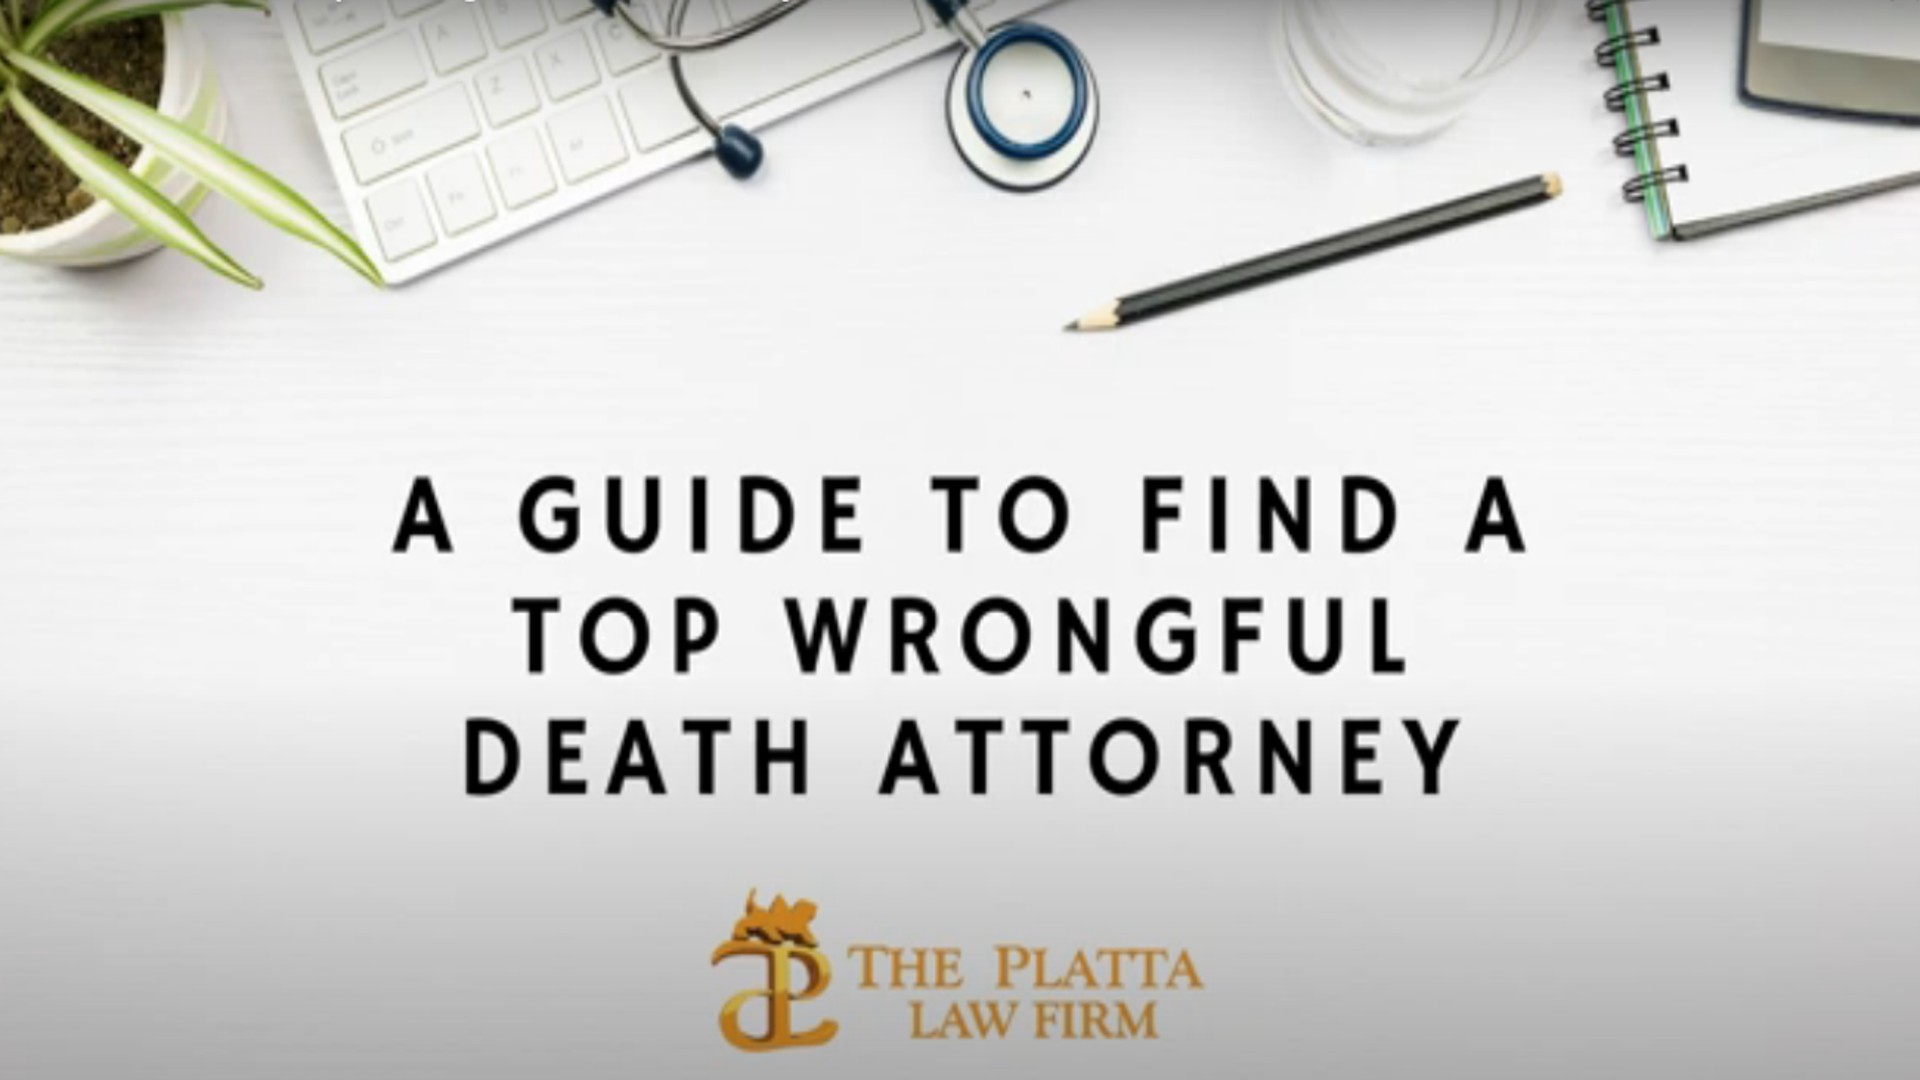 Top wrongful death attorney video